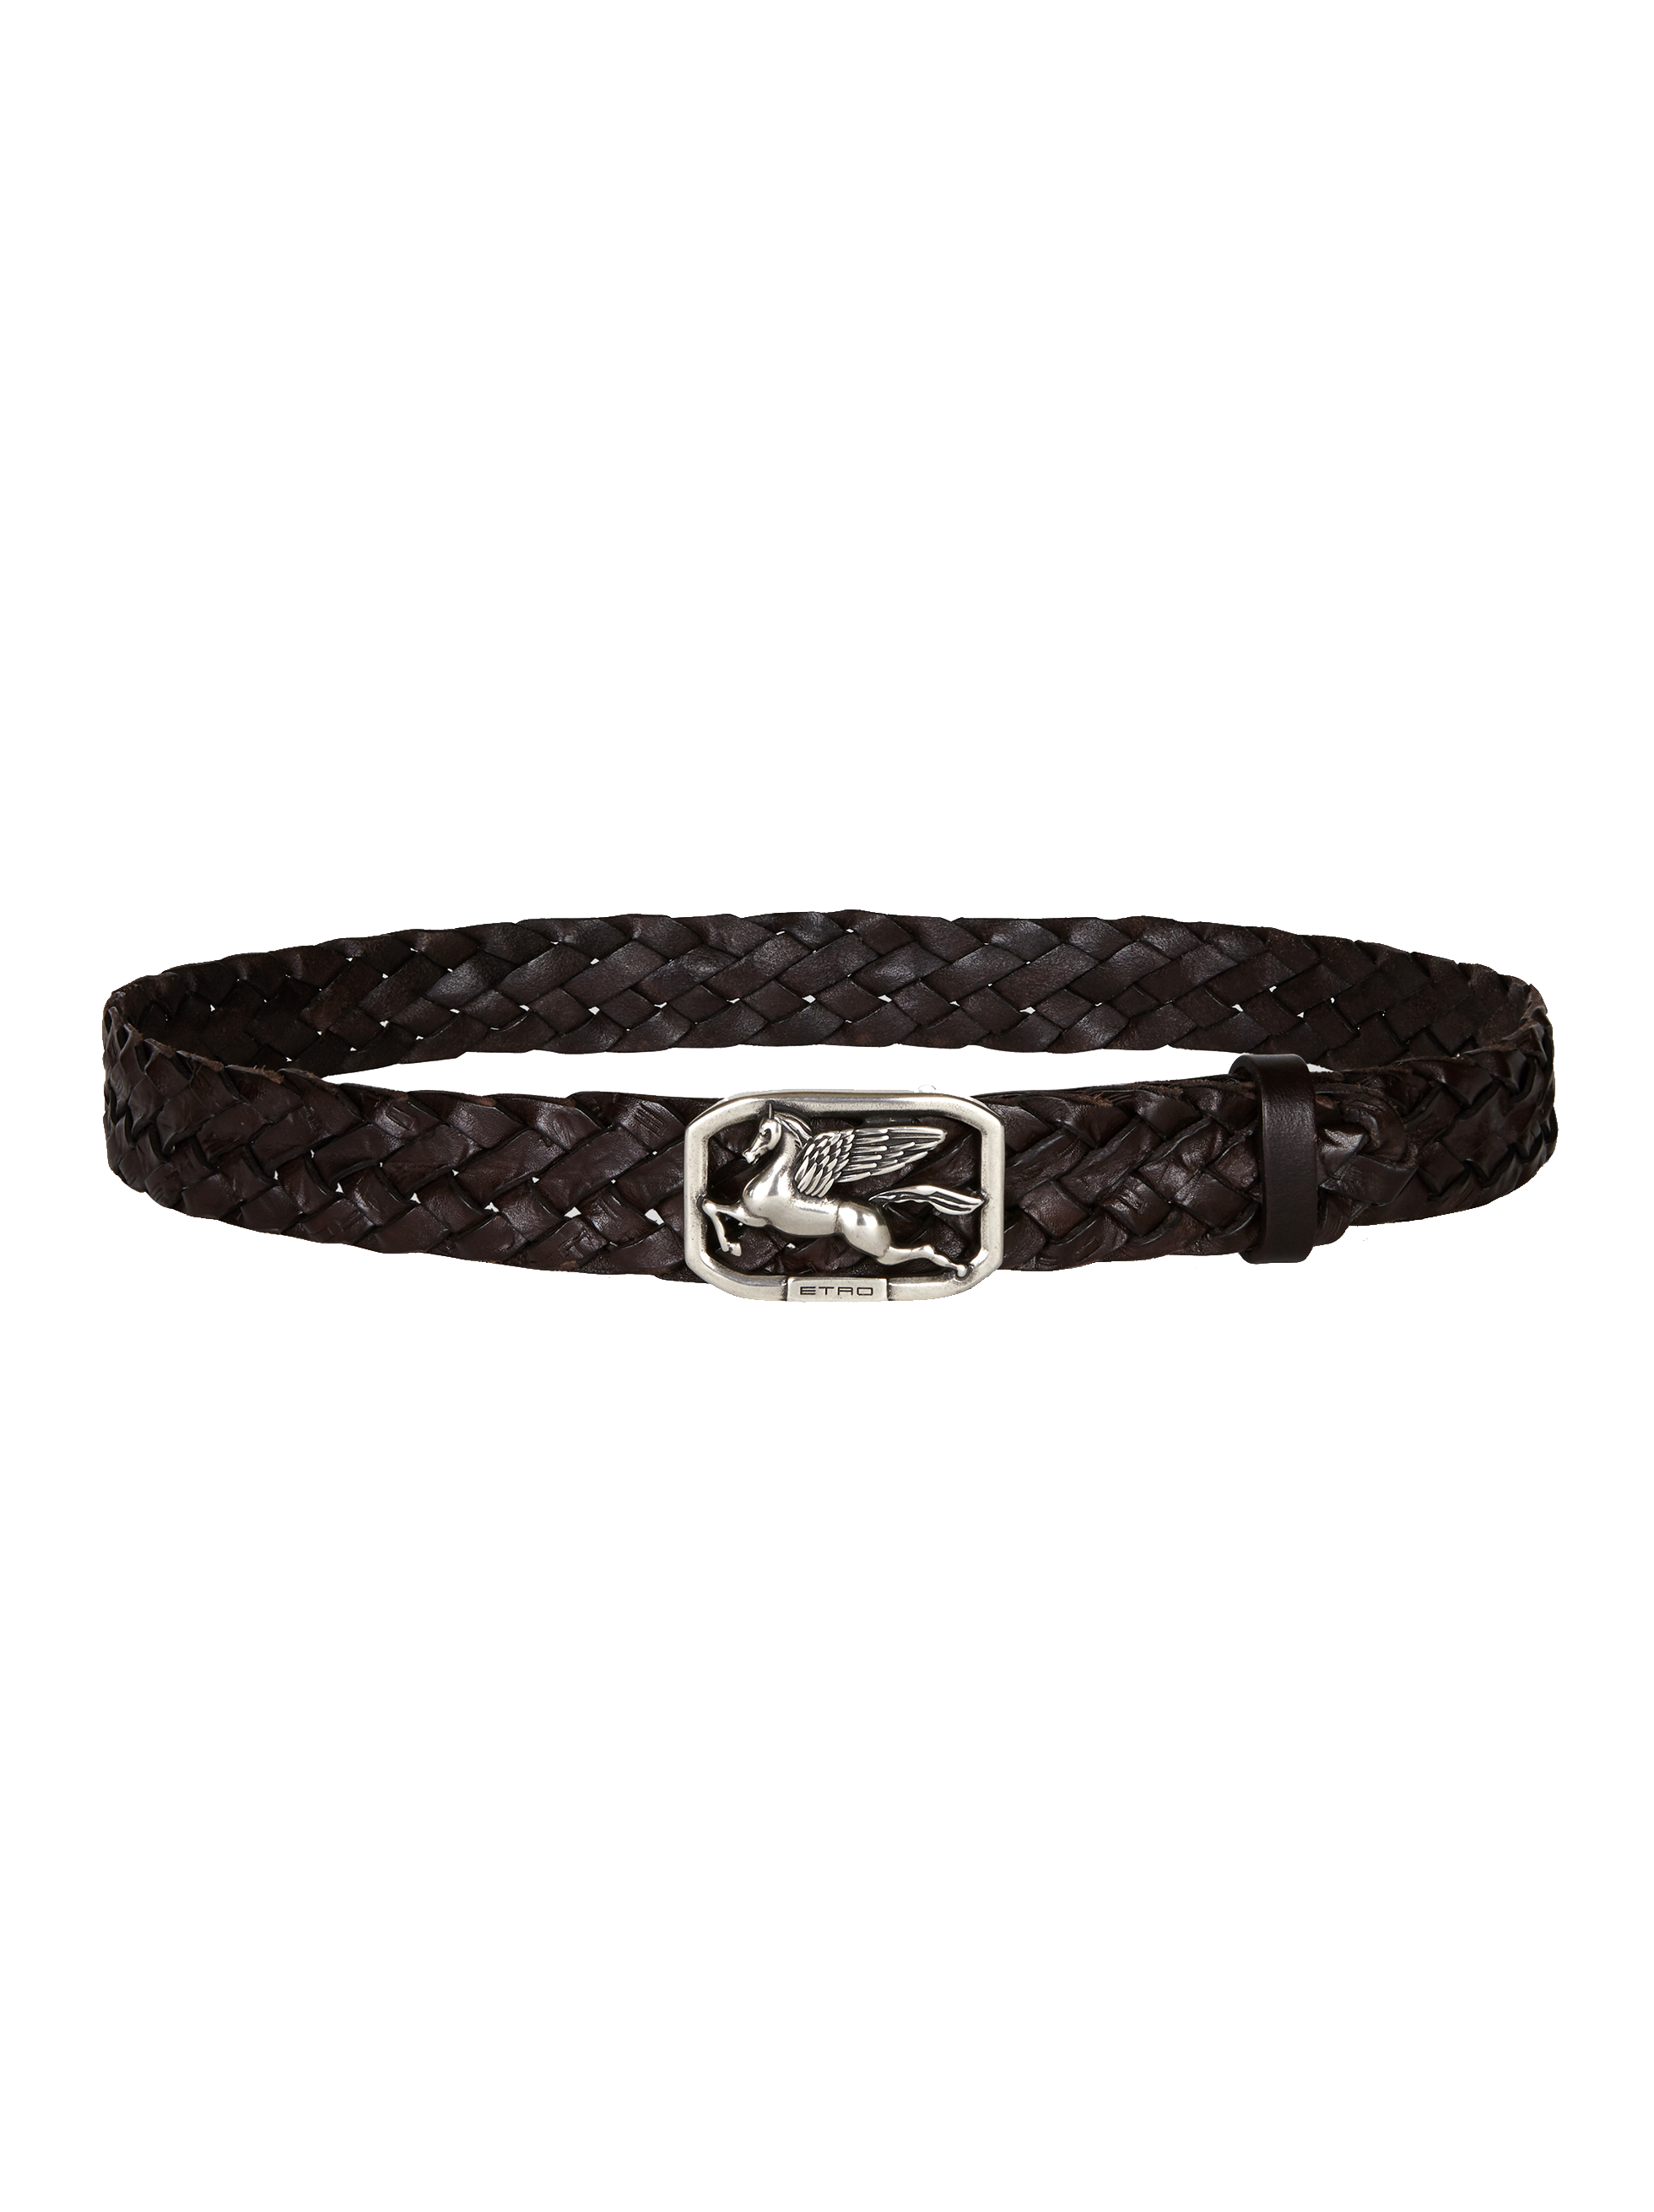 WOVEN LEATHER BELT WITH PEGASO